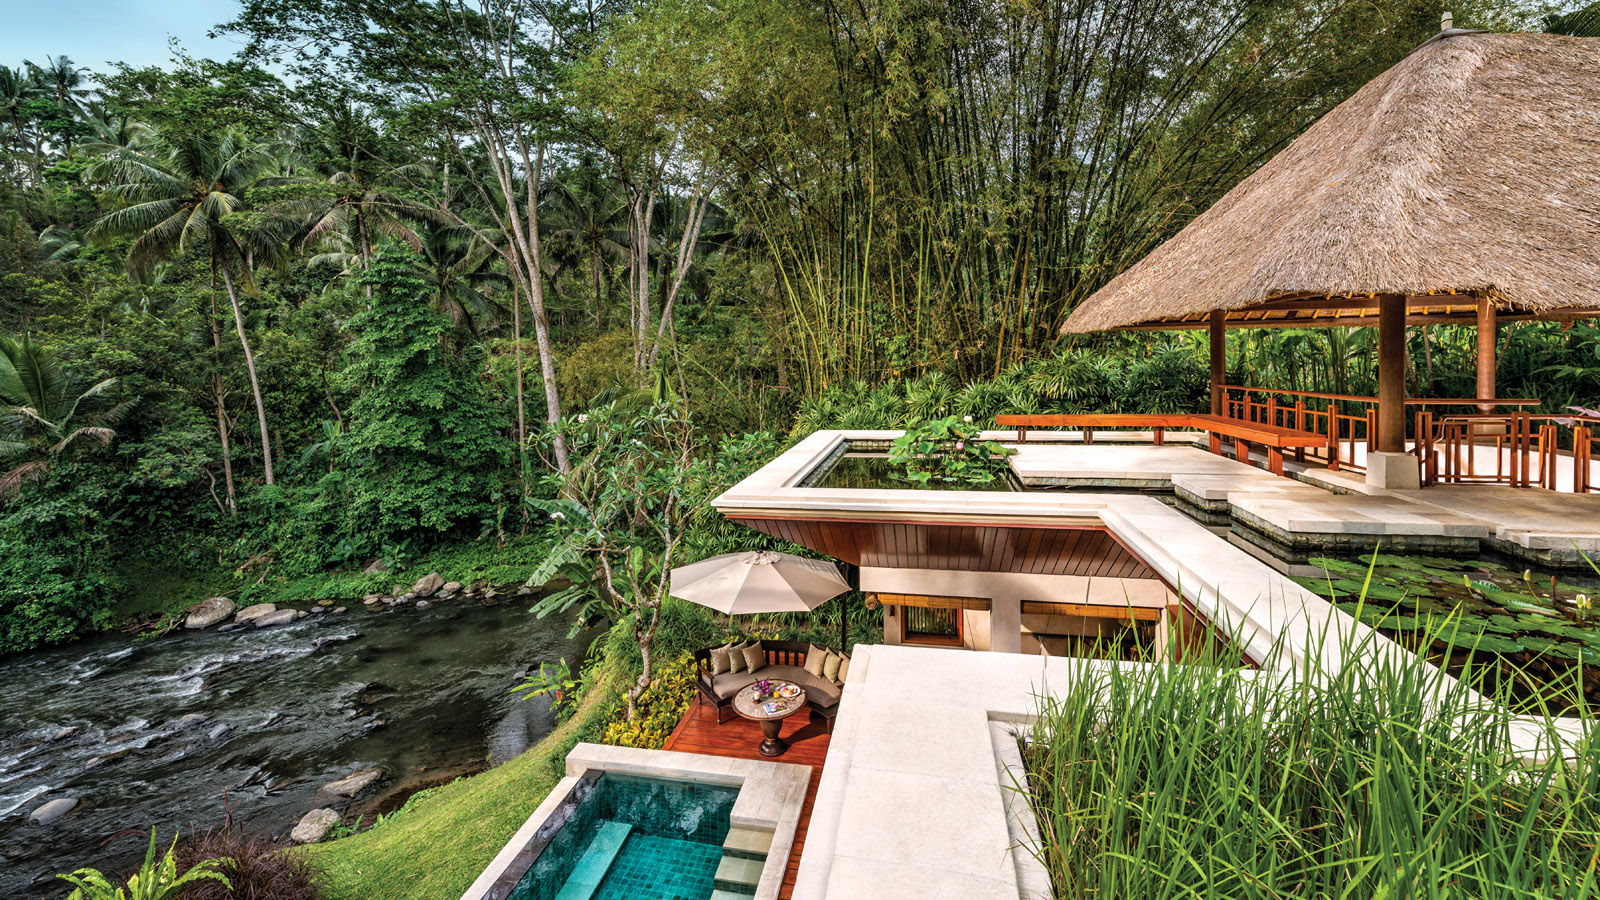 New architecture journey at four seasons sayan bali for Design hotel ubud